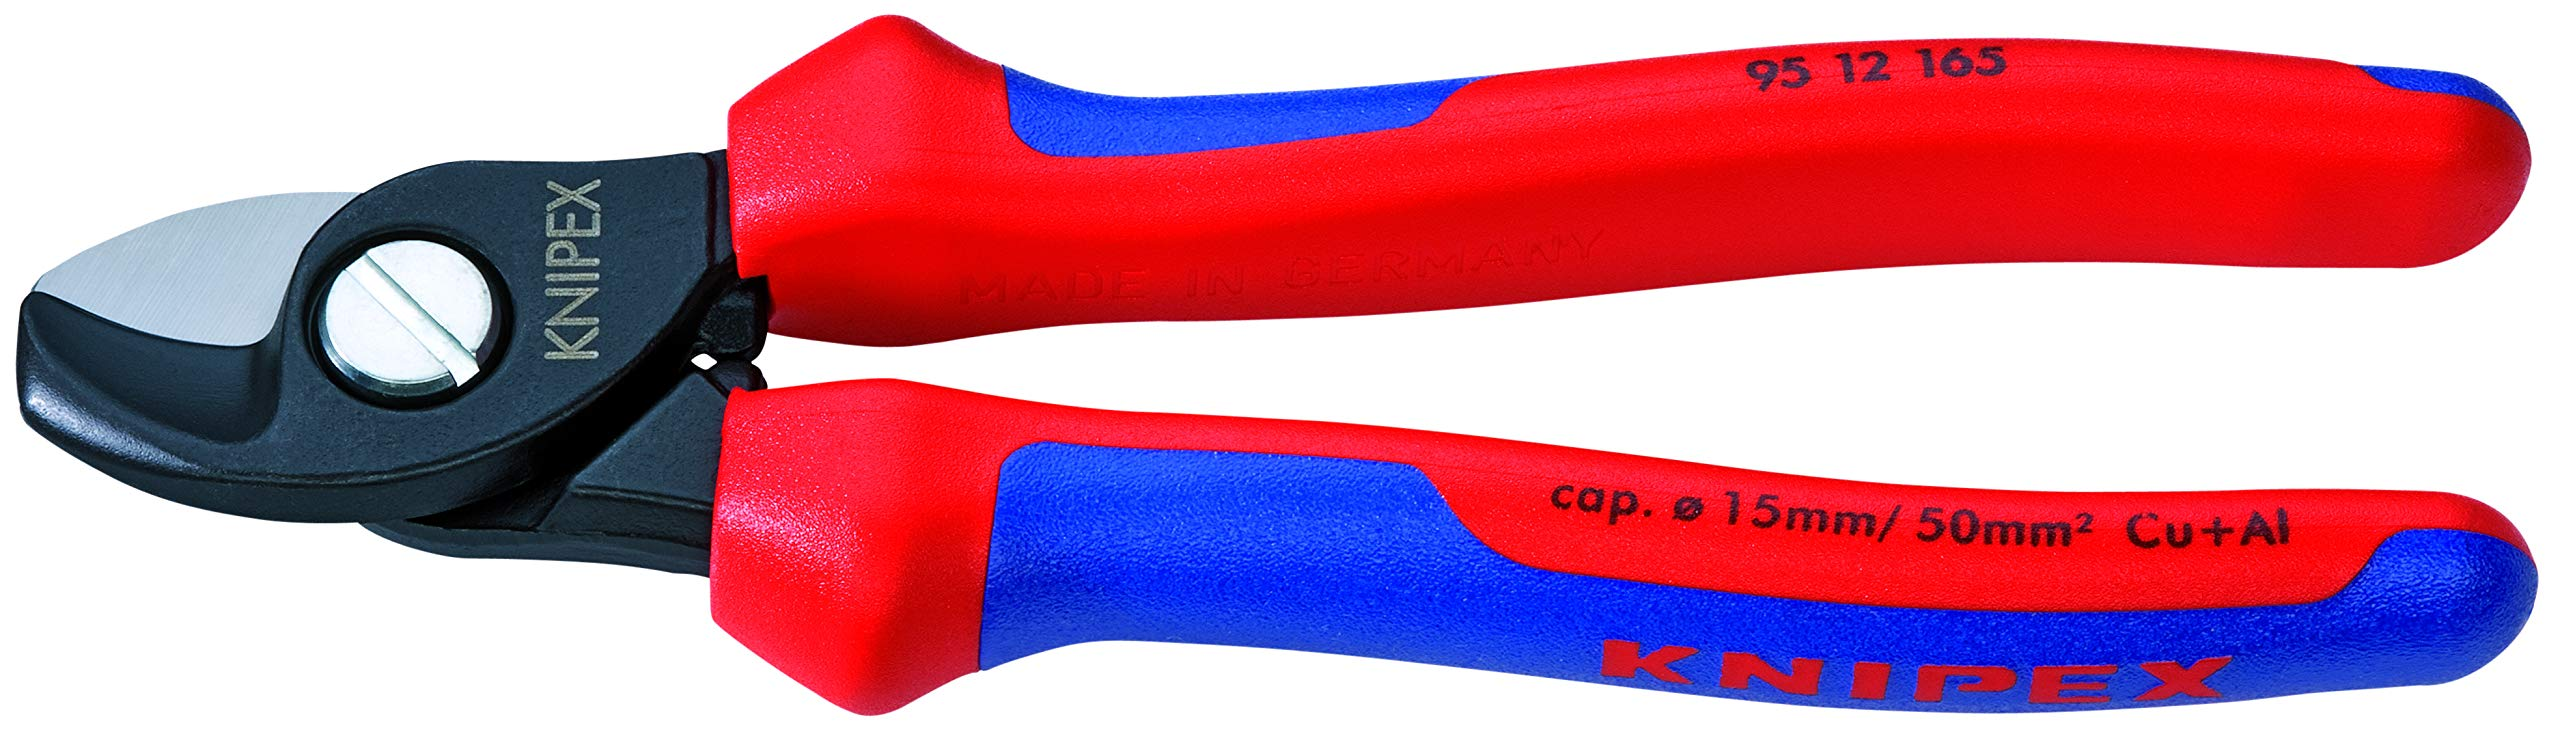 KNIPEX 95 12 165 Comfort Grip Cable Shears by KNIPEX Tools